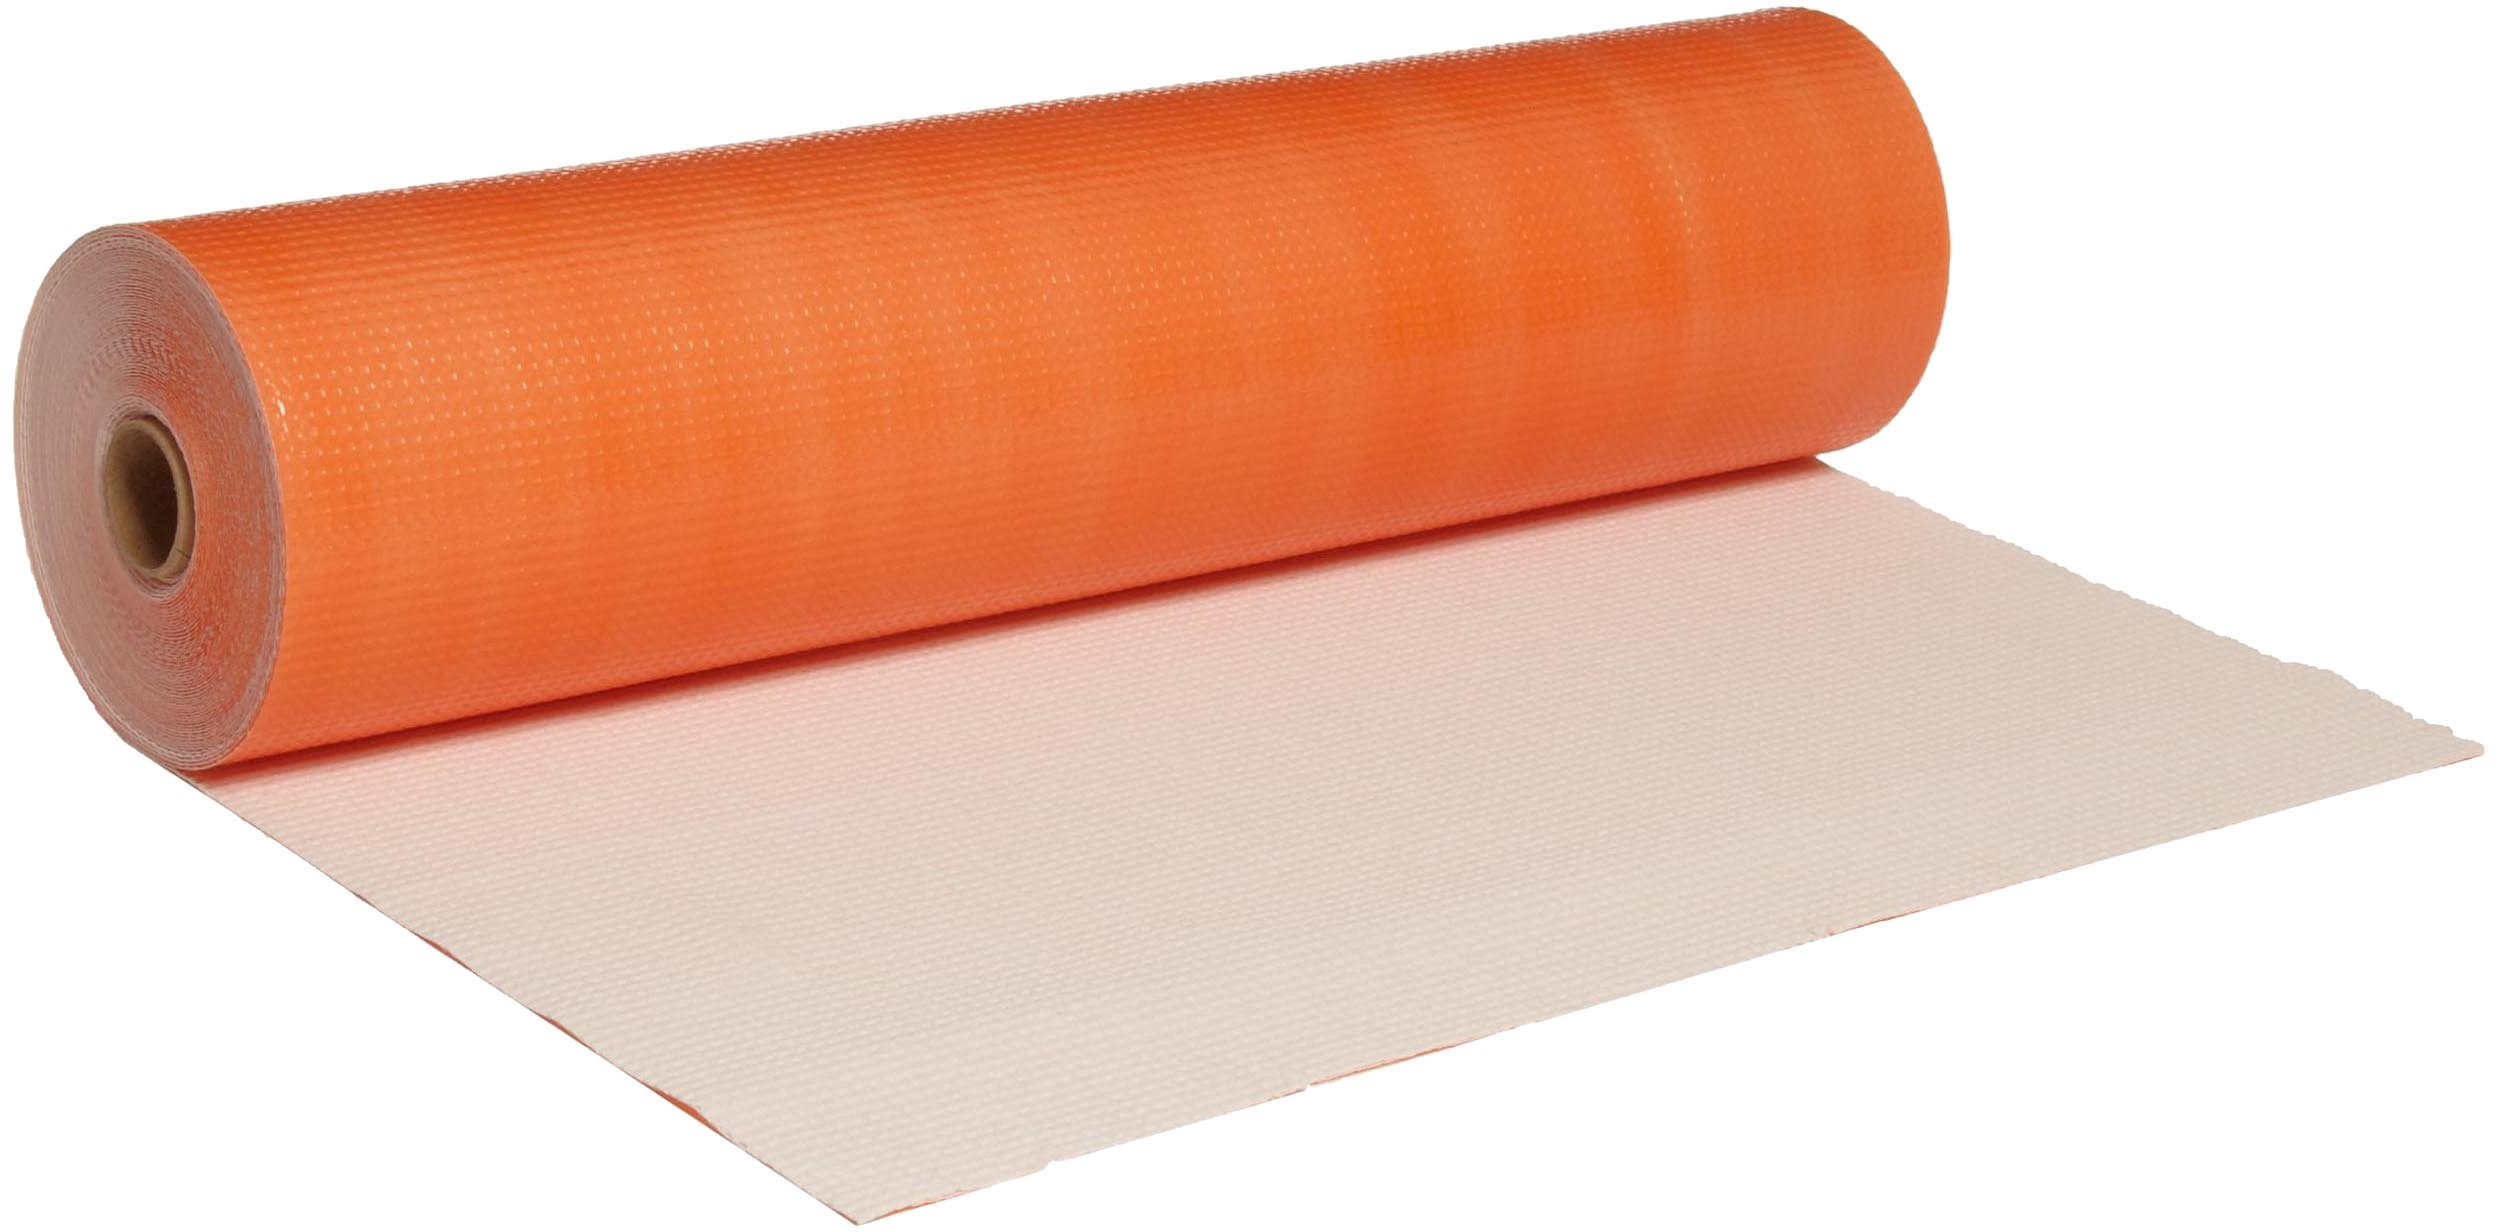 Bel-Art Labmat Bench Liner; 50 Feet, Biohazard Safety Orange (F24675-1000)